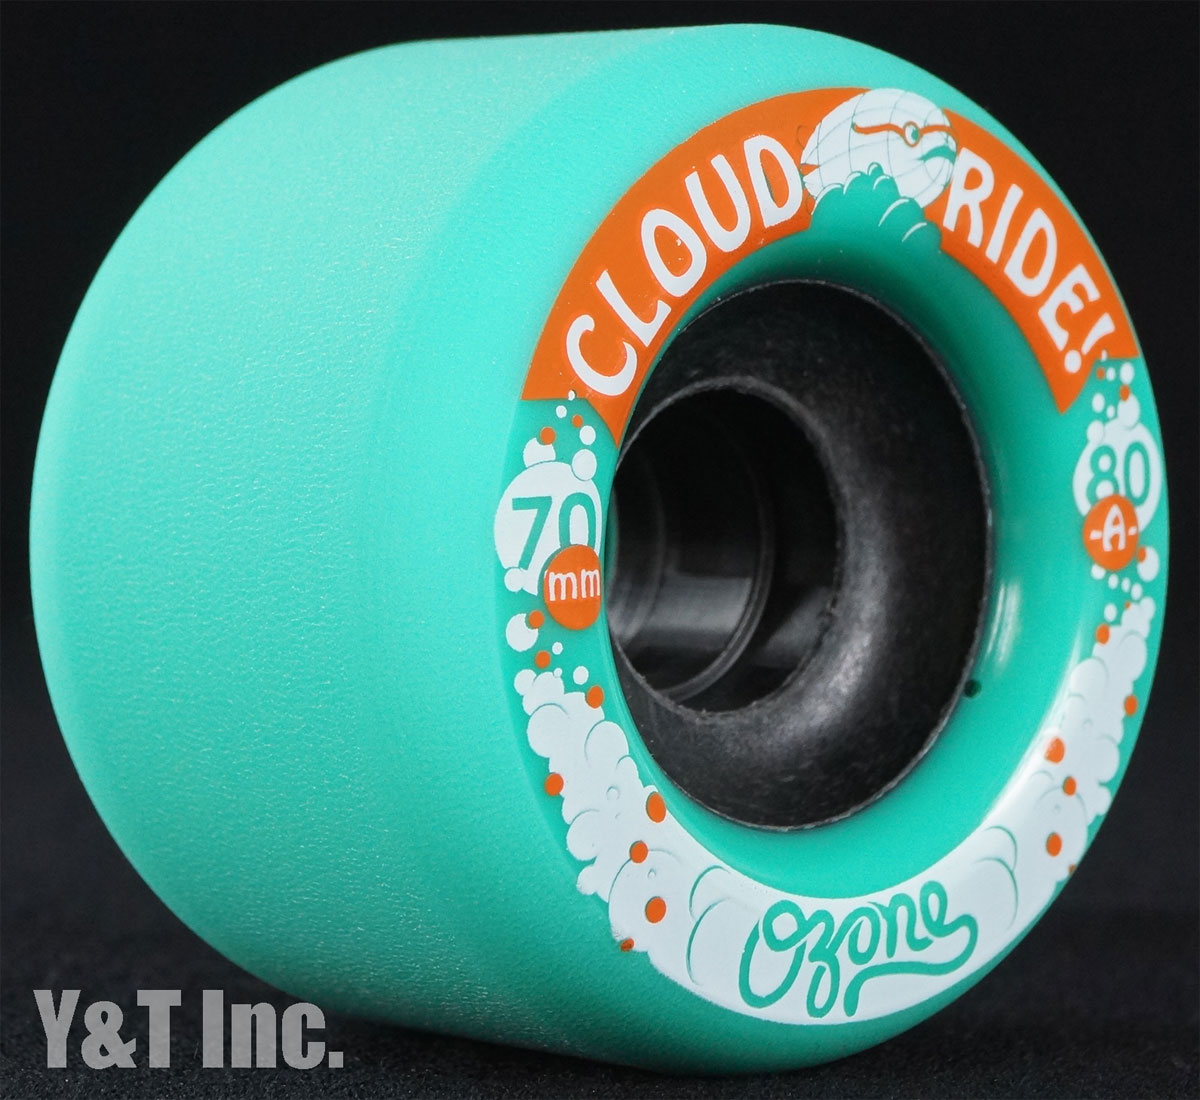 CLOUD RIDE OZONE 70mm 80a 1